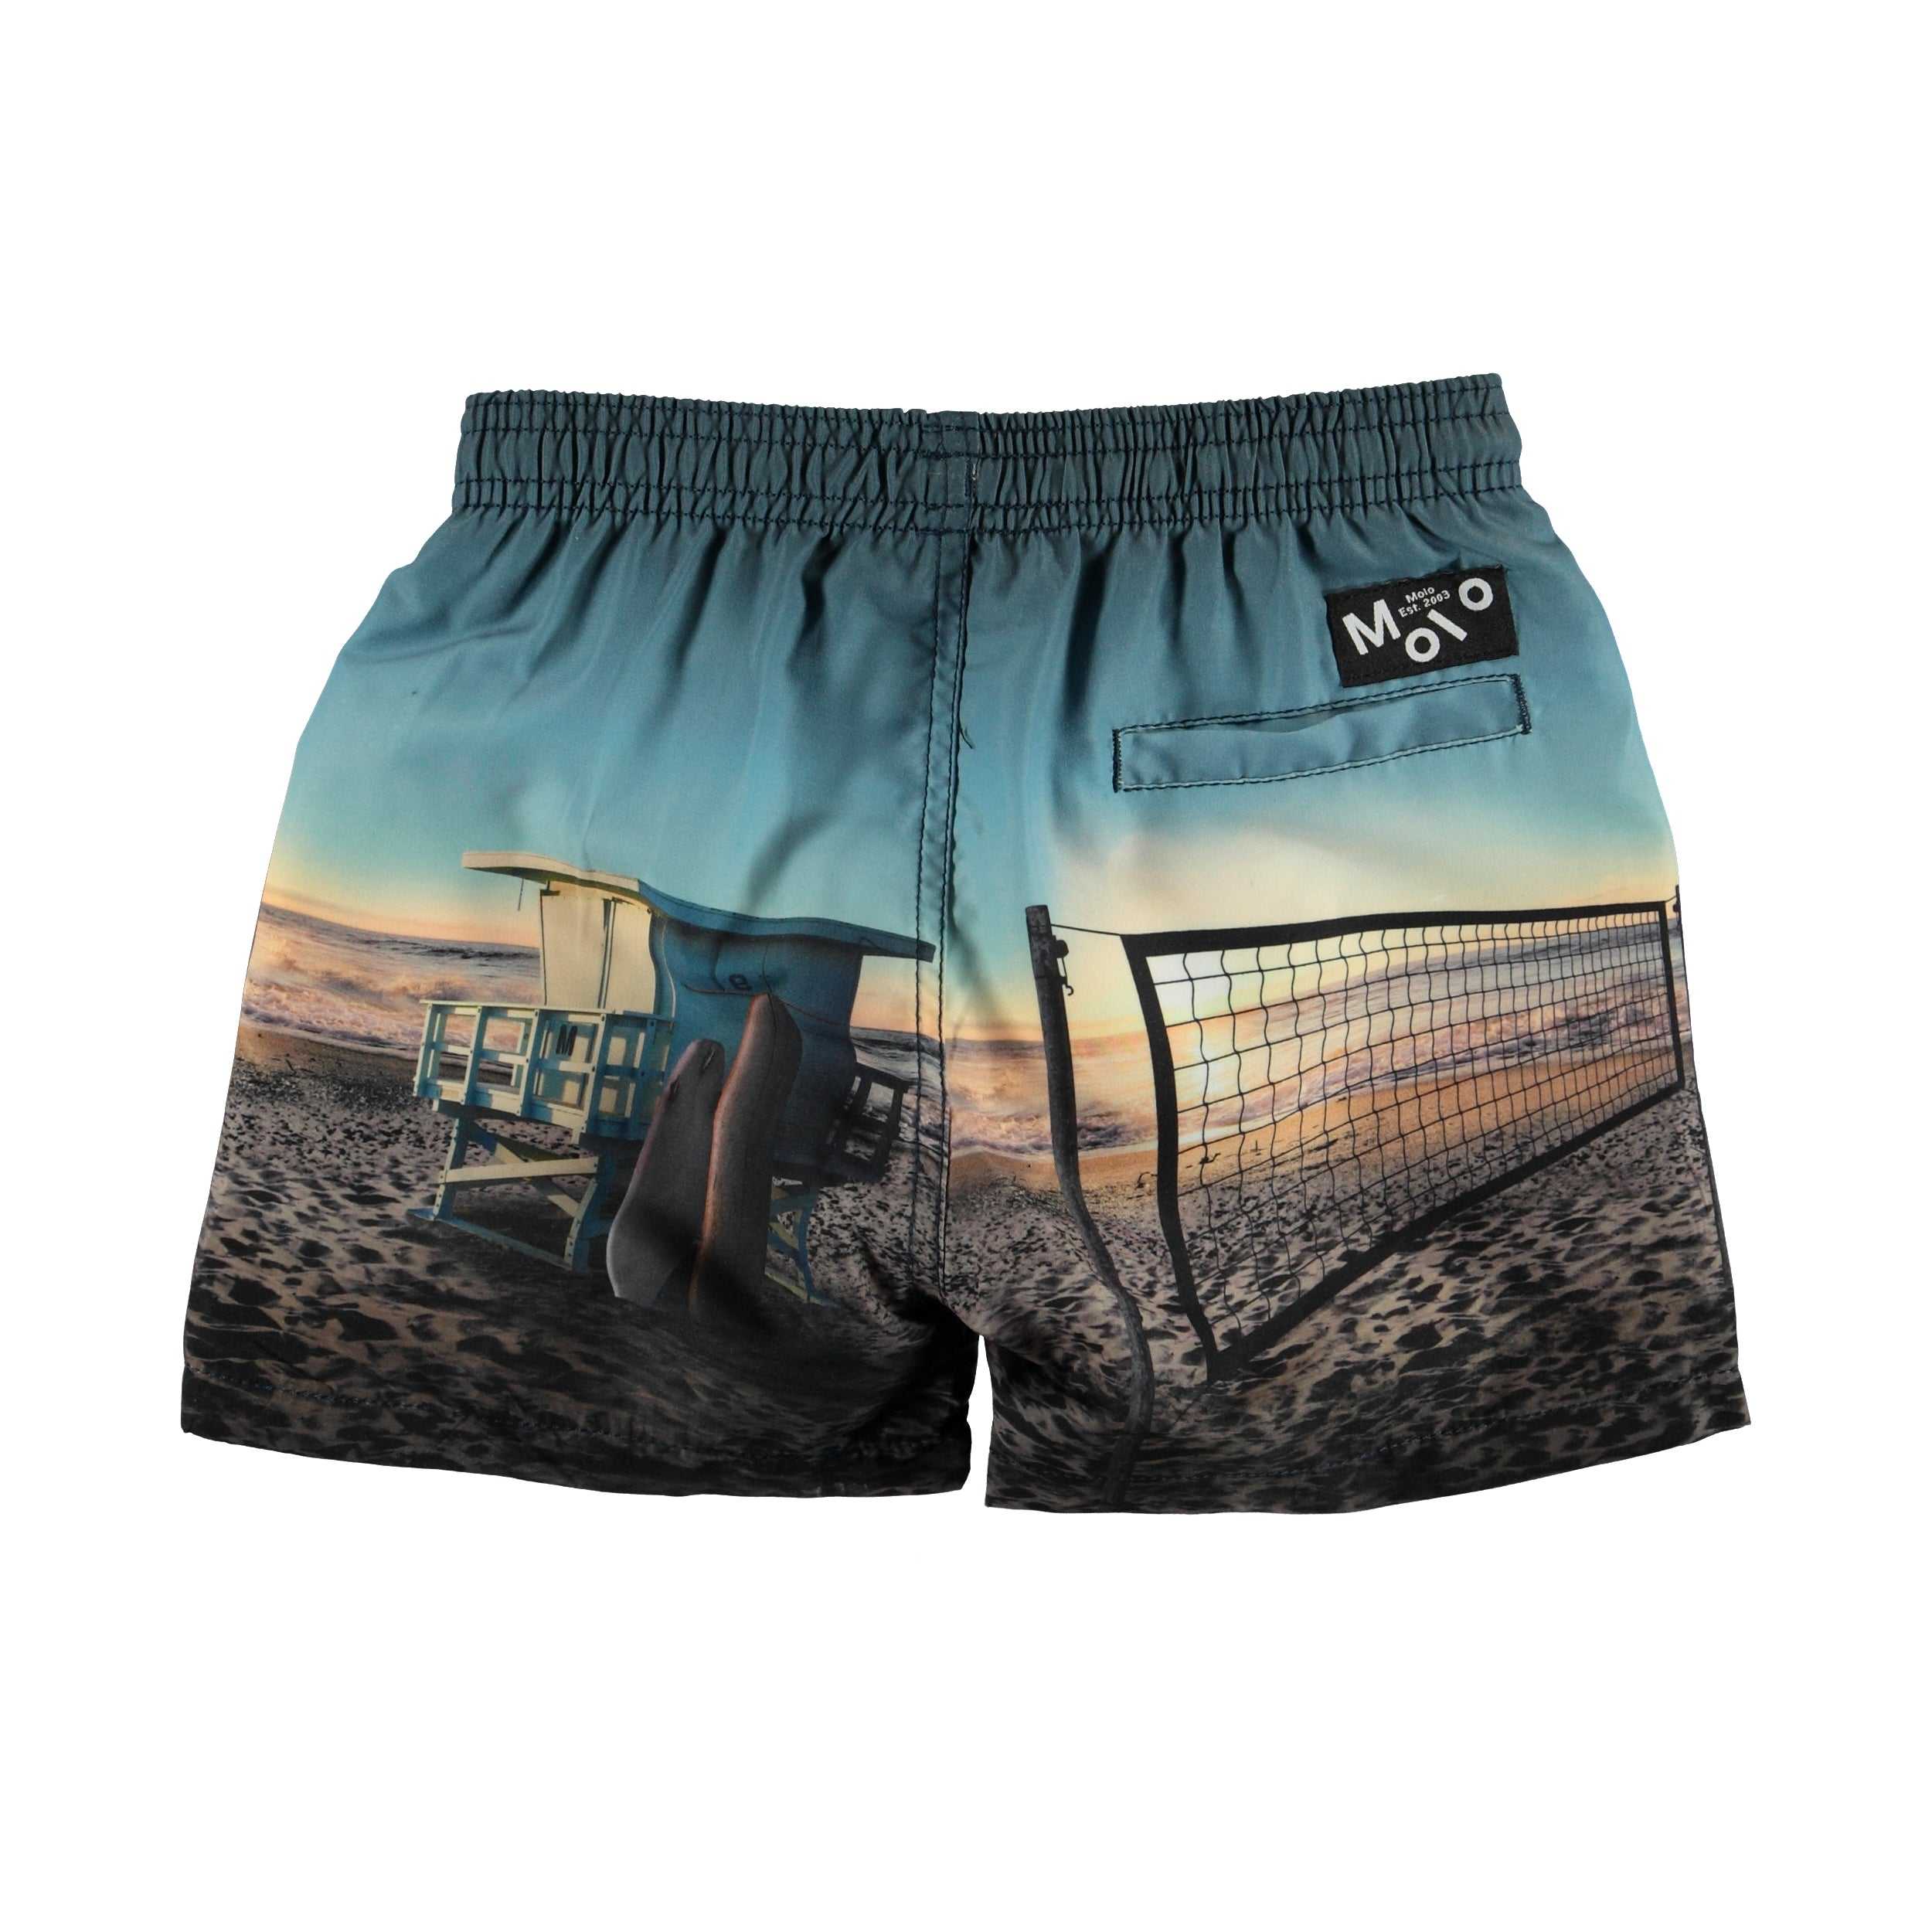 Molo Niko Boardies - On the Beach